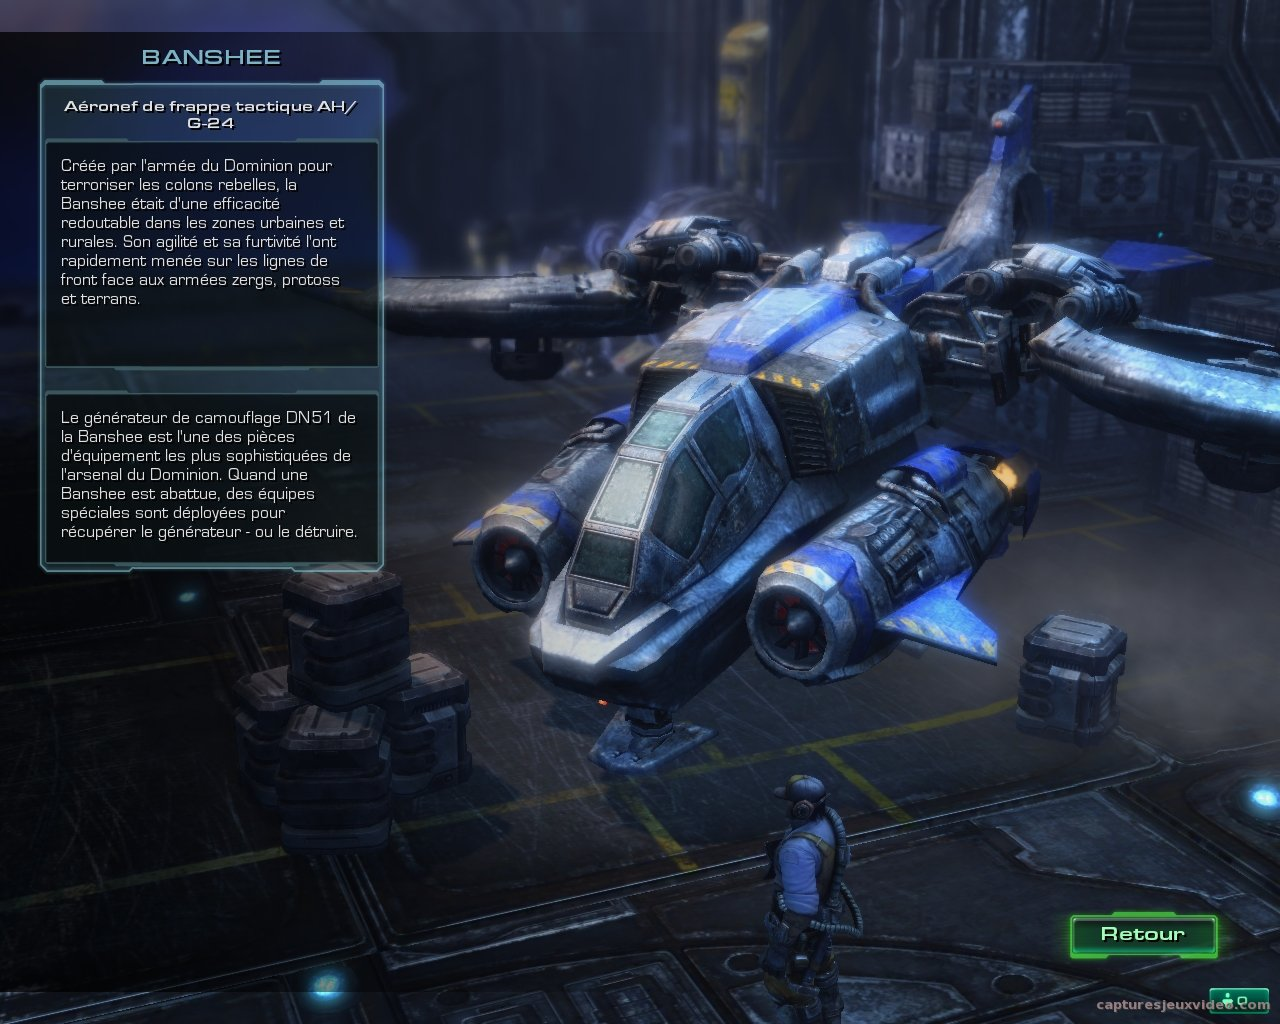 Banshee - Starcraft 2 capture ecran 0150